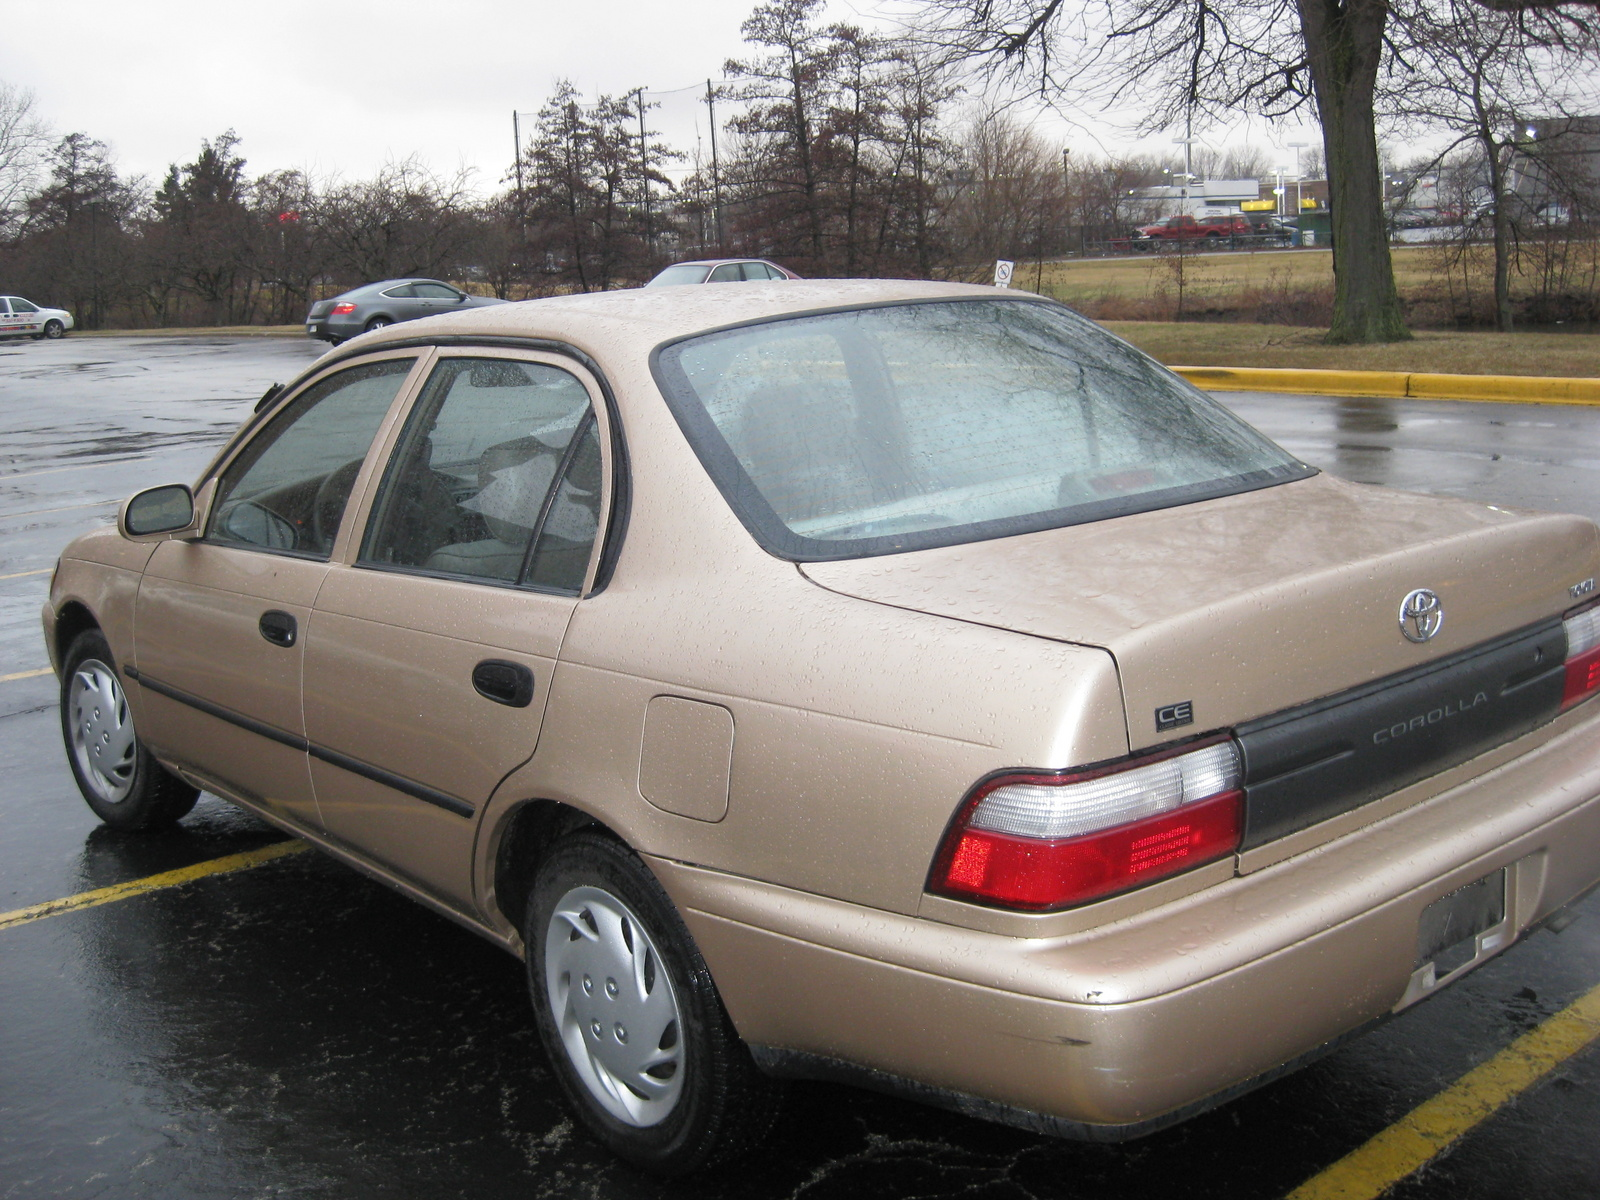 Picture of 1997 toyota corolla base exterior